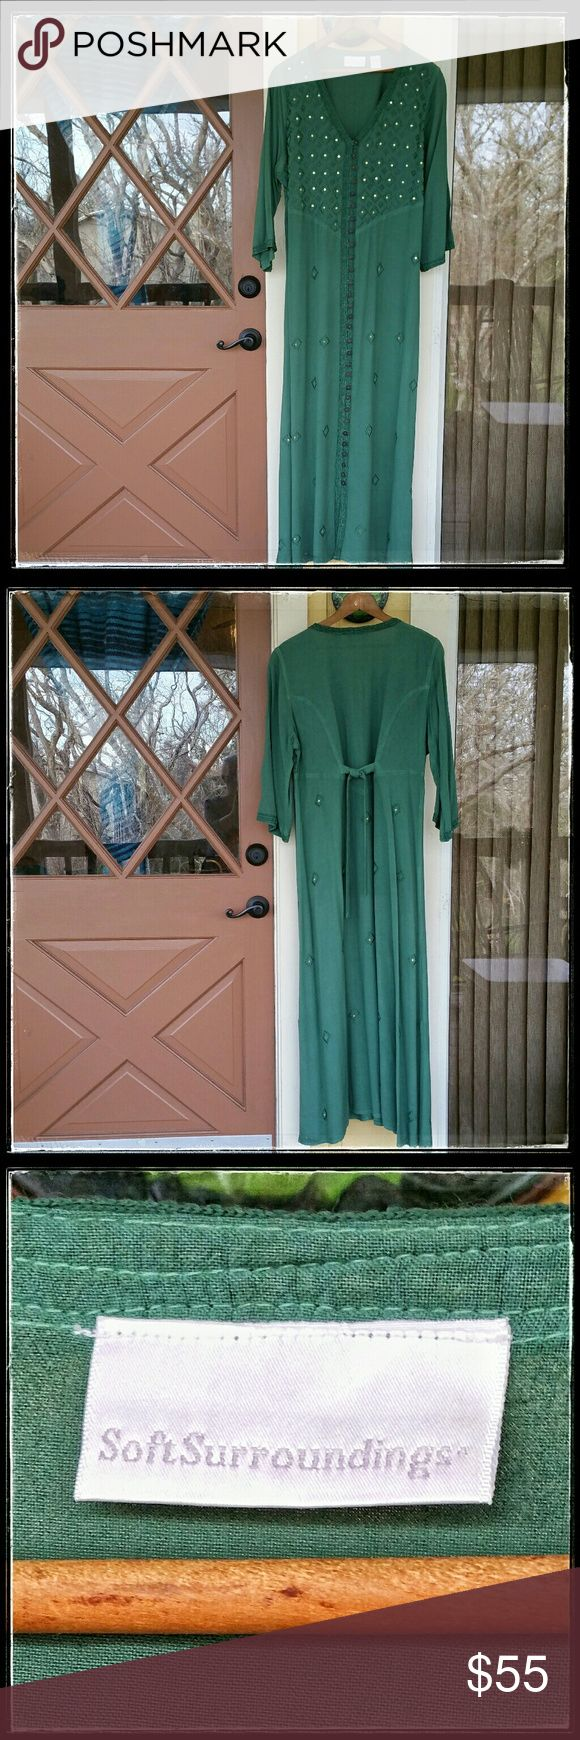 Coldwater Creek- lovely green maxi dress Lovely, comfortable, full length dress from Coldwater Creek with accent trim, stitching and antique silver sequins. Button up front with ties in the back. Perfect condition. Size: Medium Petite. 100% Rayon. Hand wash. Coldwater Creek Dresses Maxi